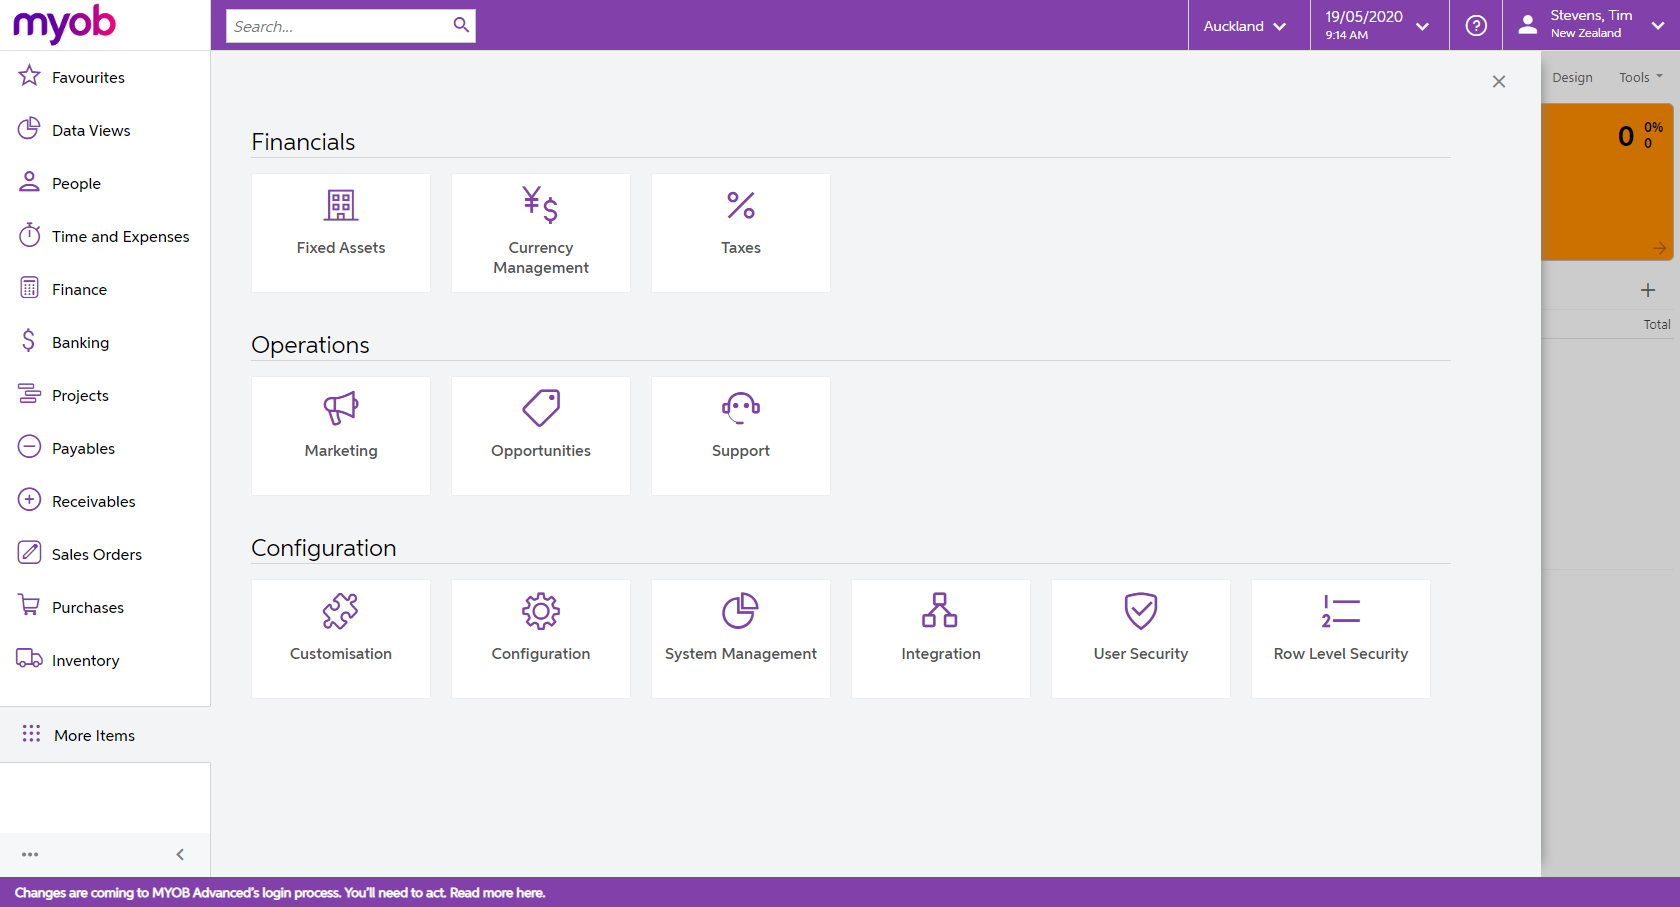 Manage your customer accounts with automated processes to help you generate invoices, send statements, verify balances, deliver customer reports and more